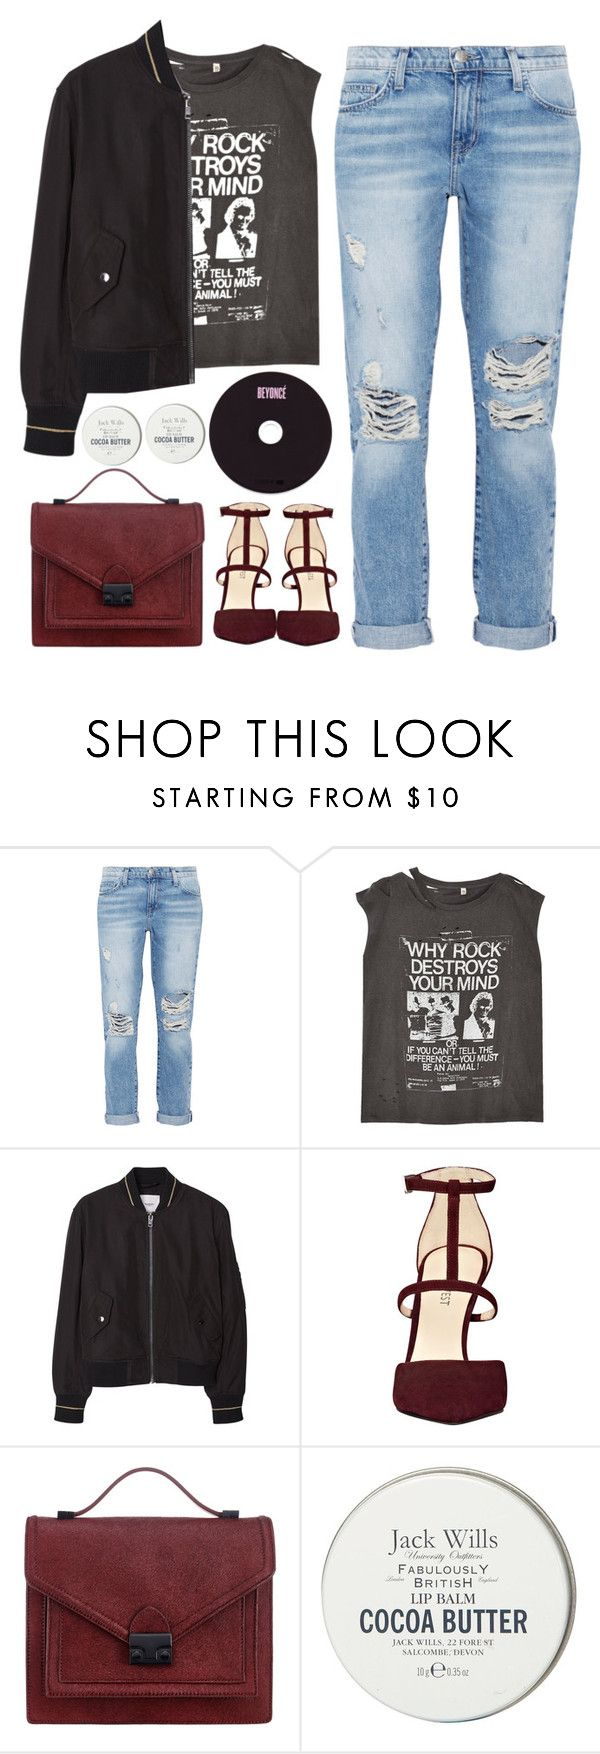 """Untitled #196"" by tmizzle on Polyvore featuring Current/Elliott, R13, MANGO, Nine West, Loeffler Randall, Jack Wills, women's clothing, women, female and woman"